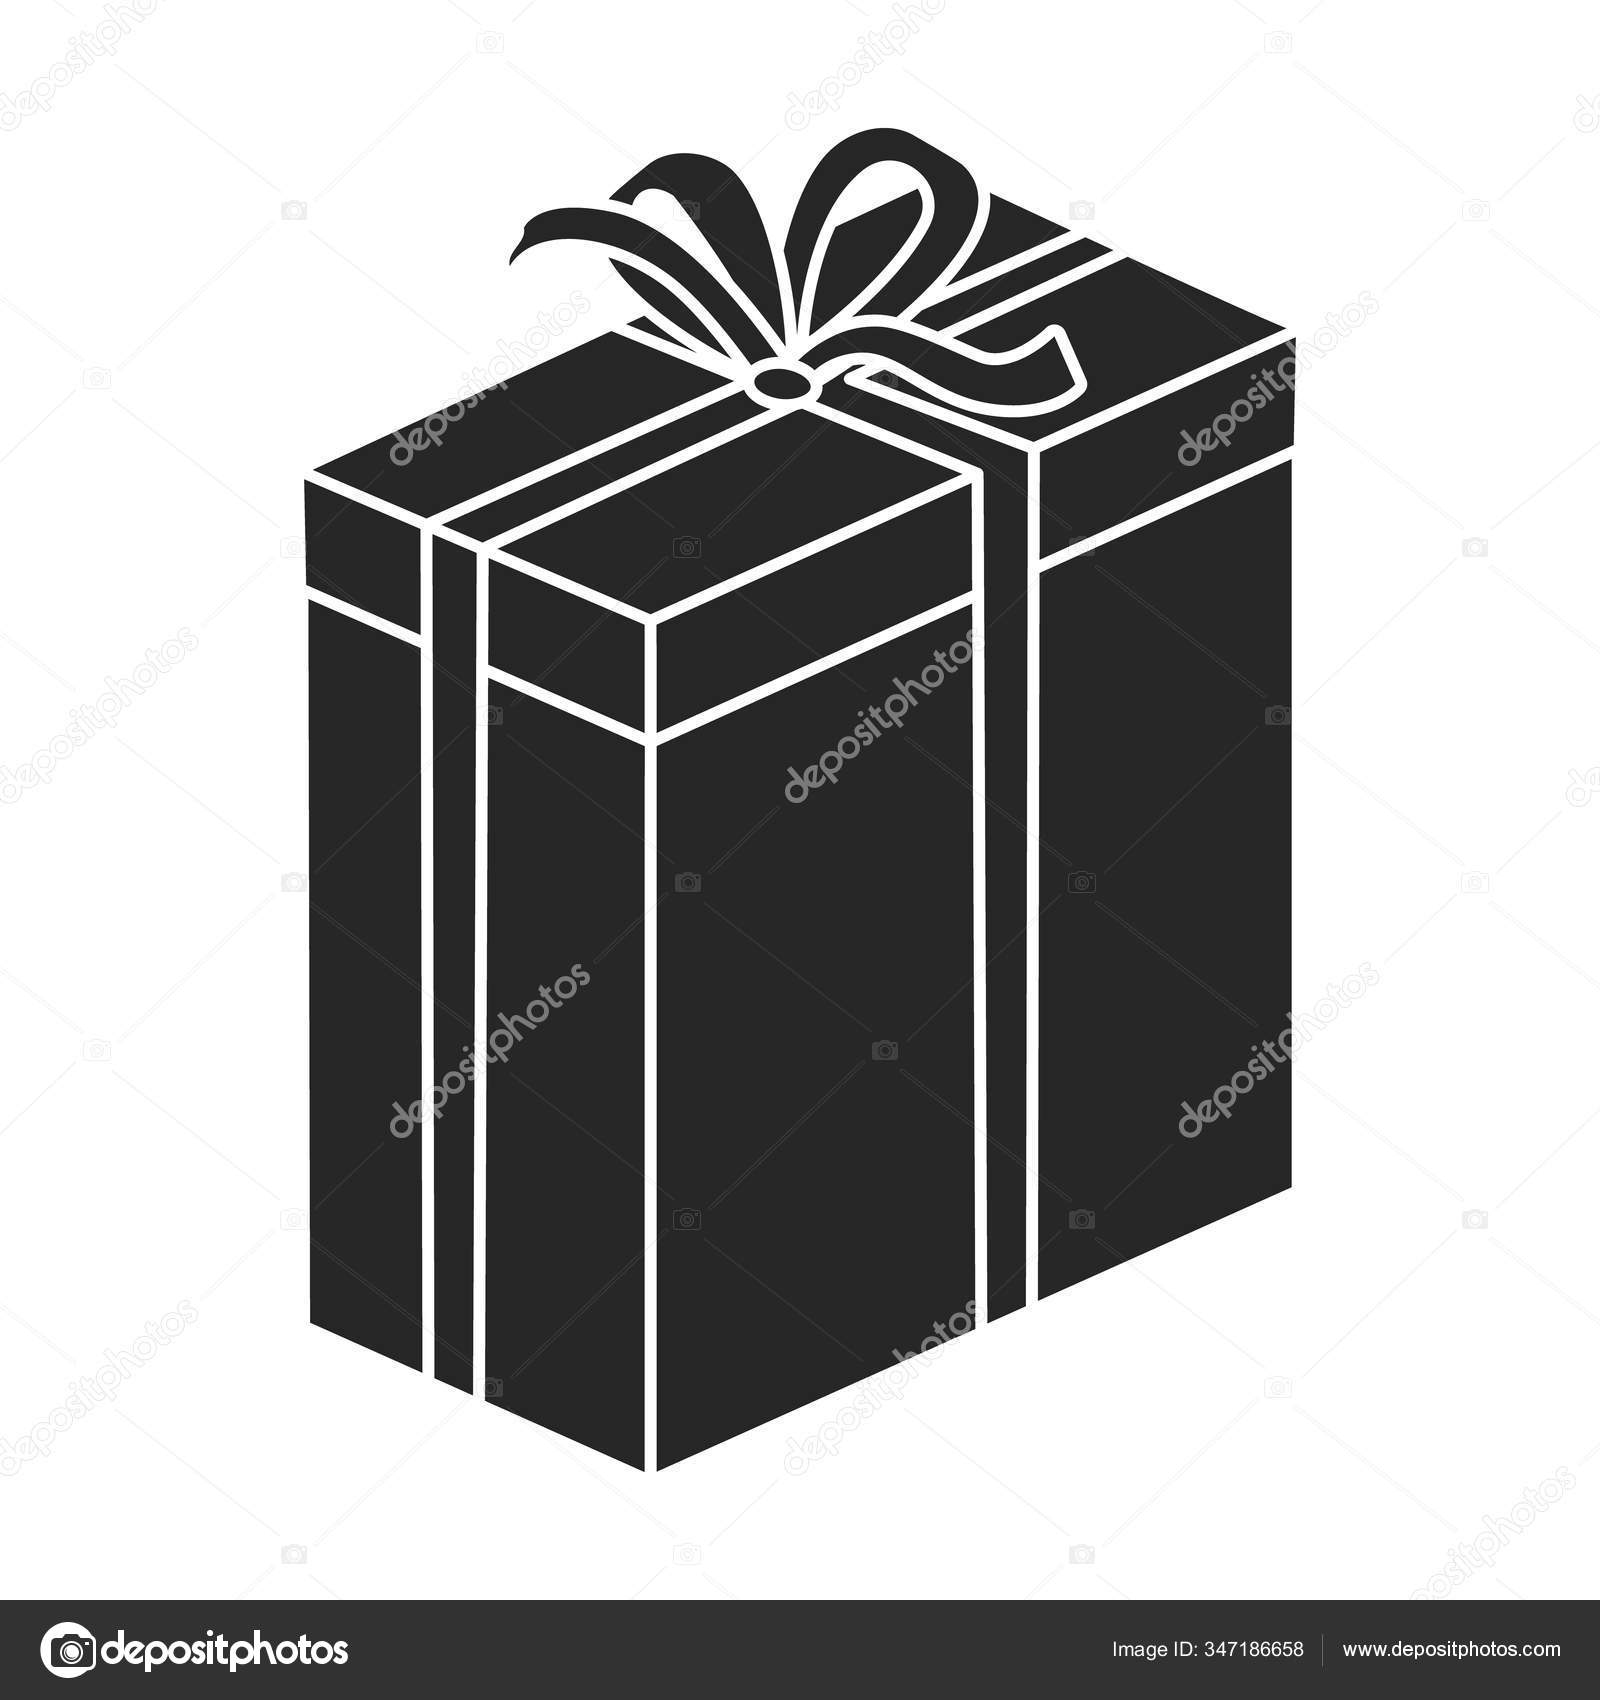 Gift Box Vector Icon Black Vector Icon Isolated On White Background Gift Box Stock Vector C Magicleaf 347186658